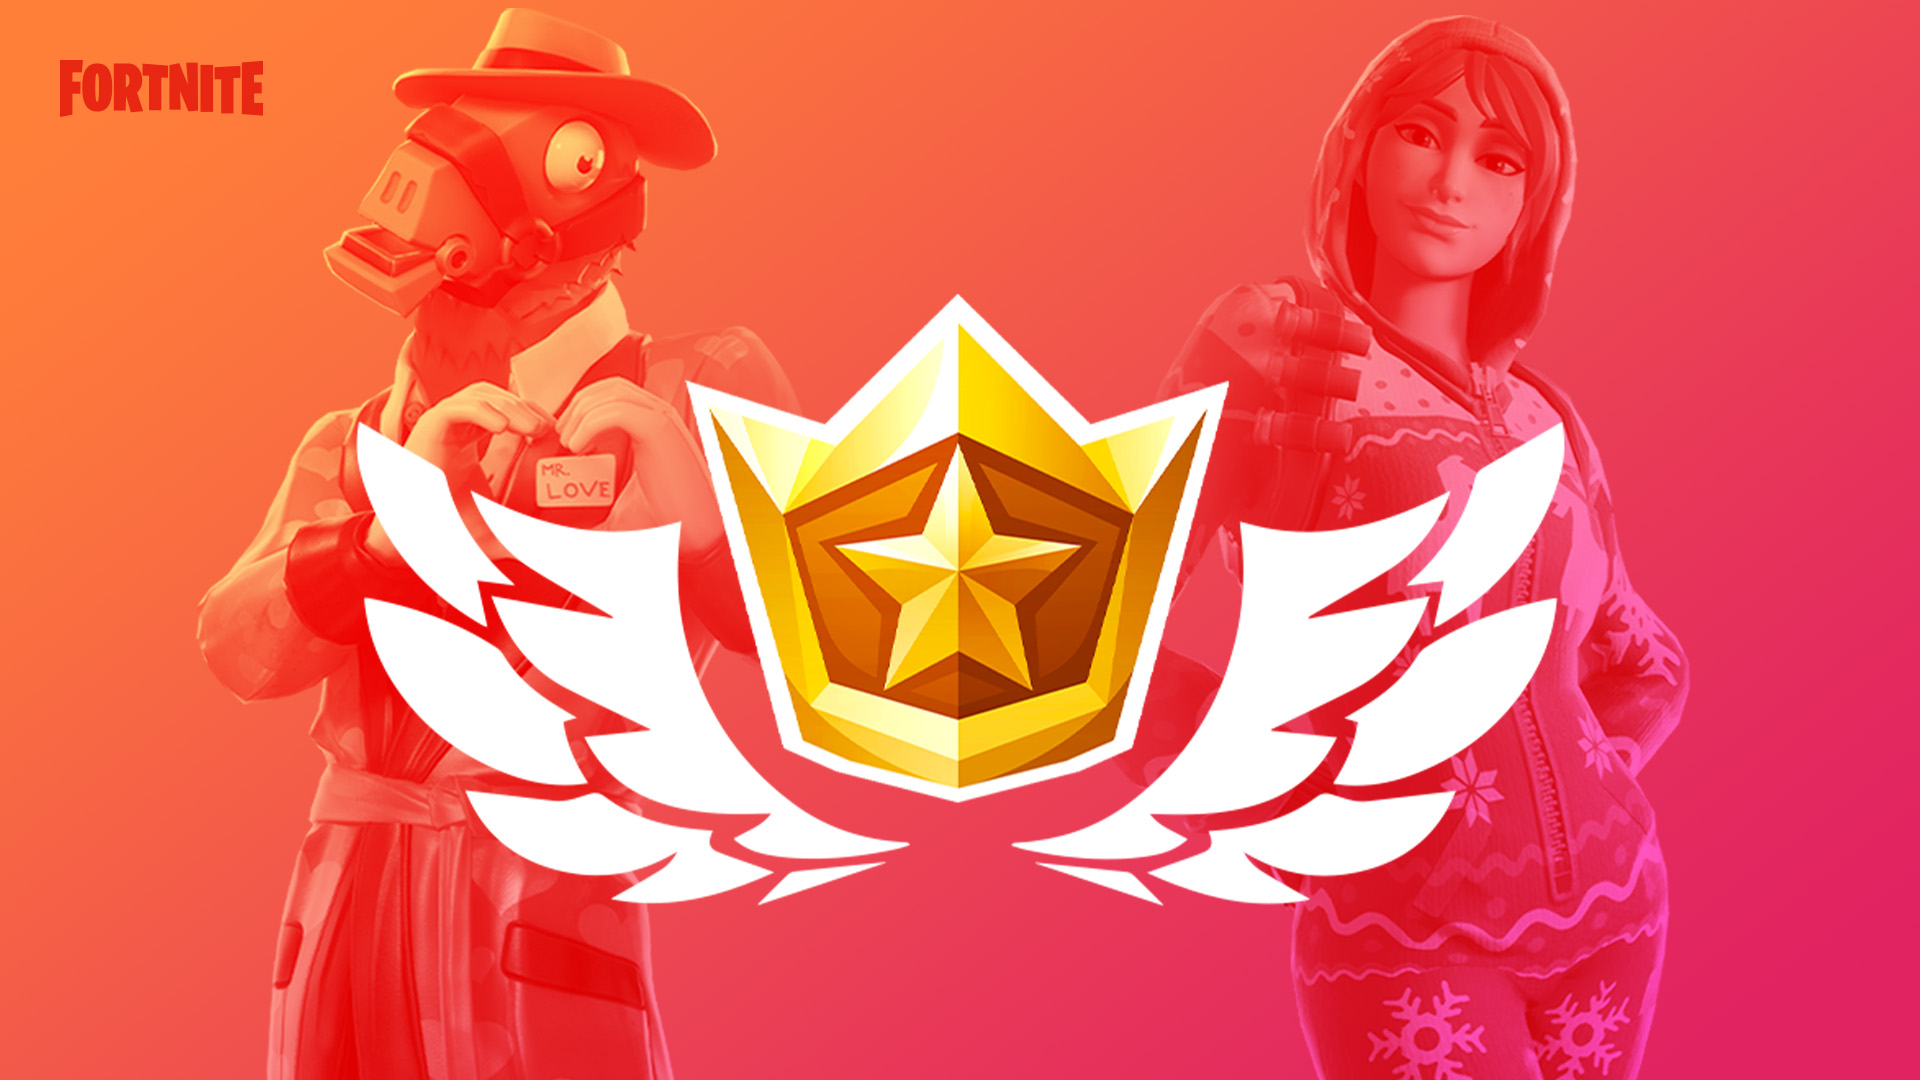 Fortnite Patch Notes: Gifting, Free Season 8 Battle Pass, and More